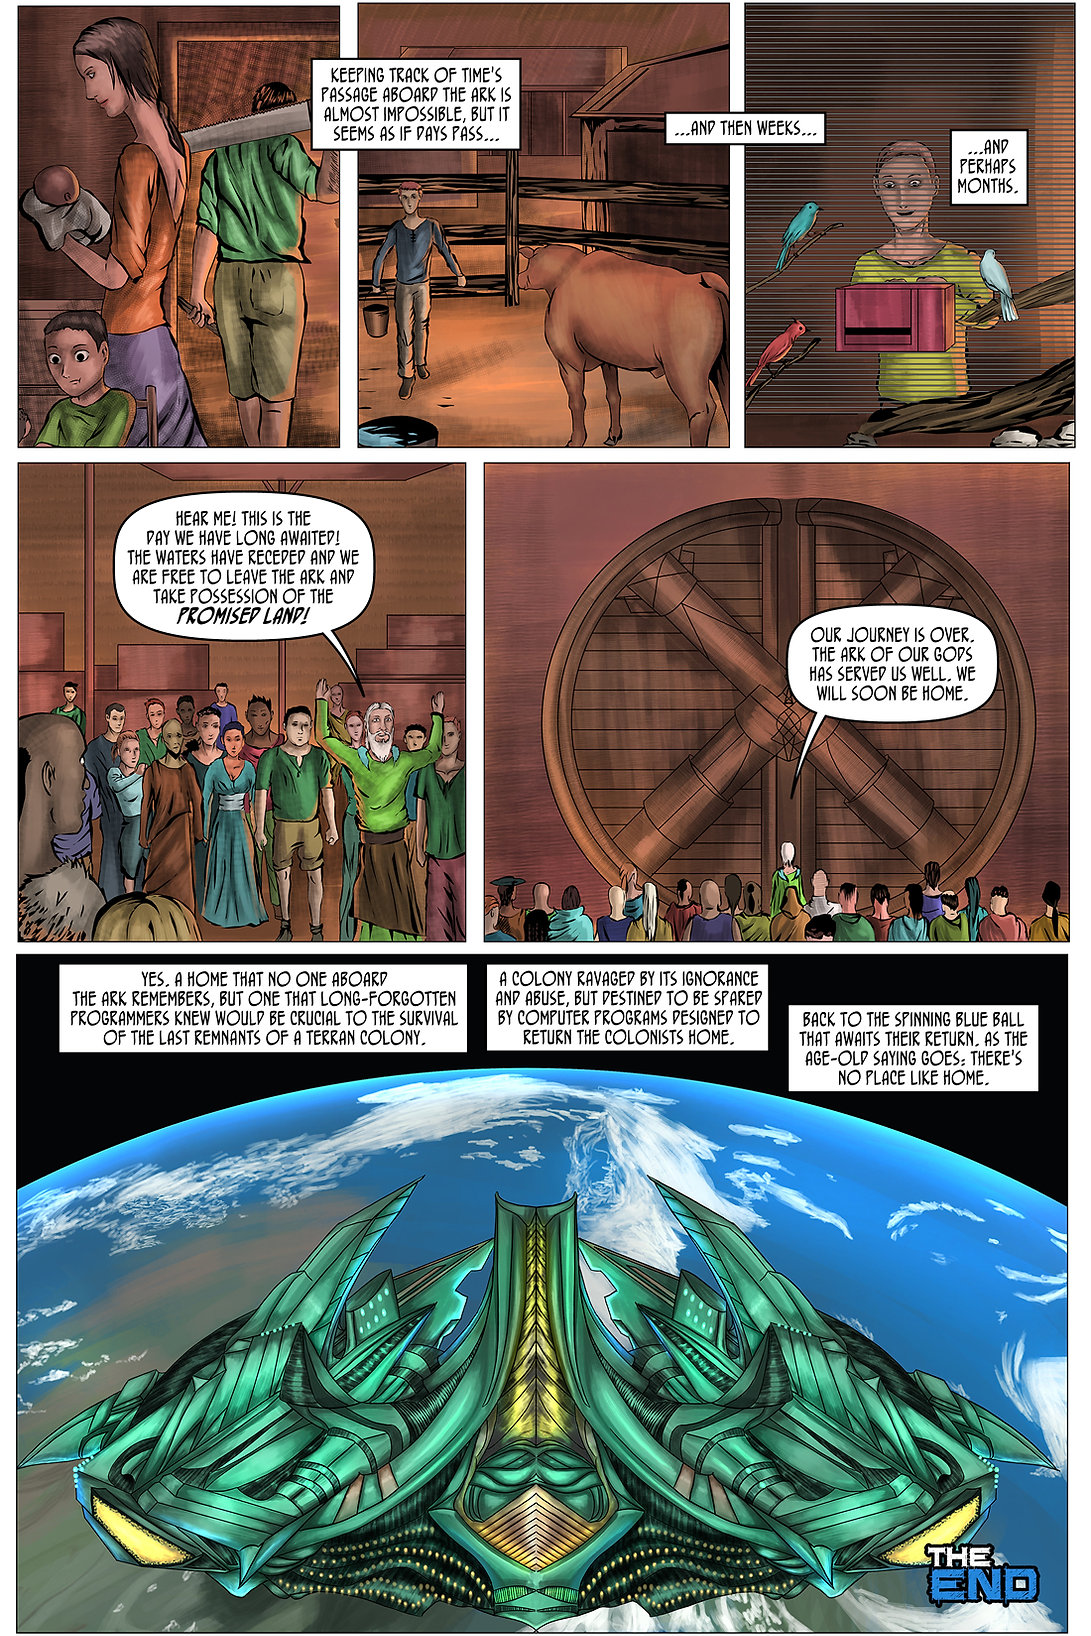 TheArk_Page 03.jpg